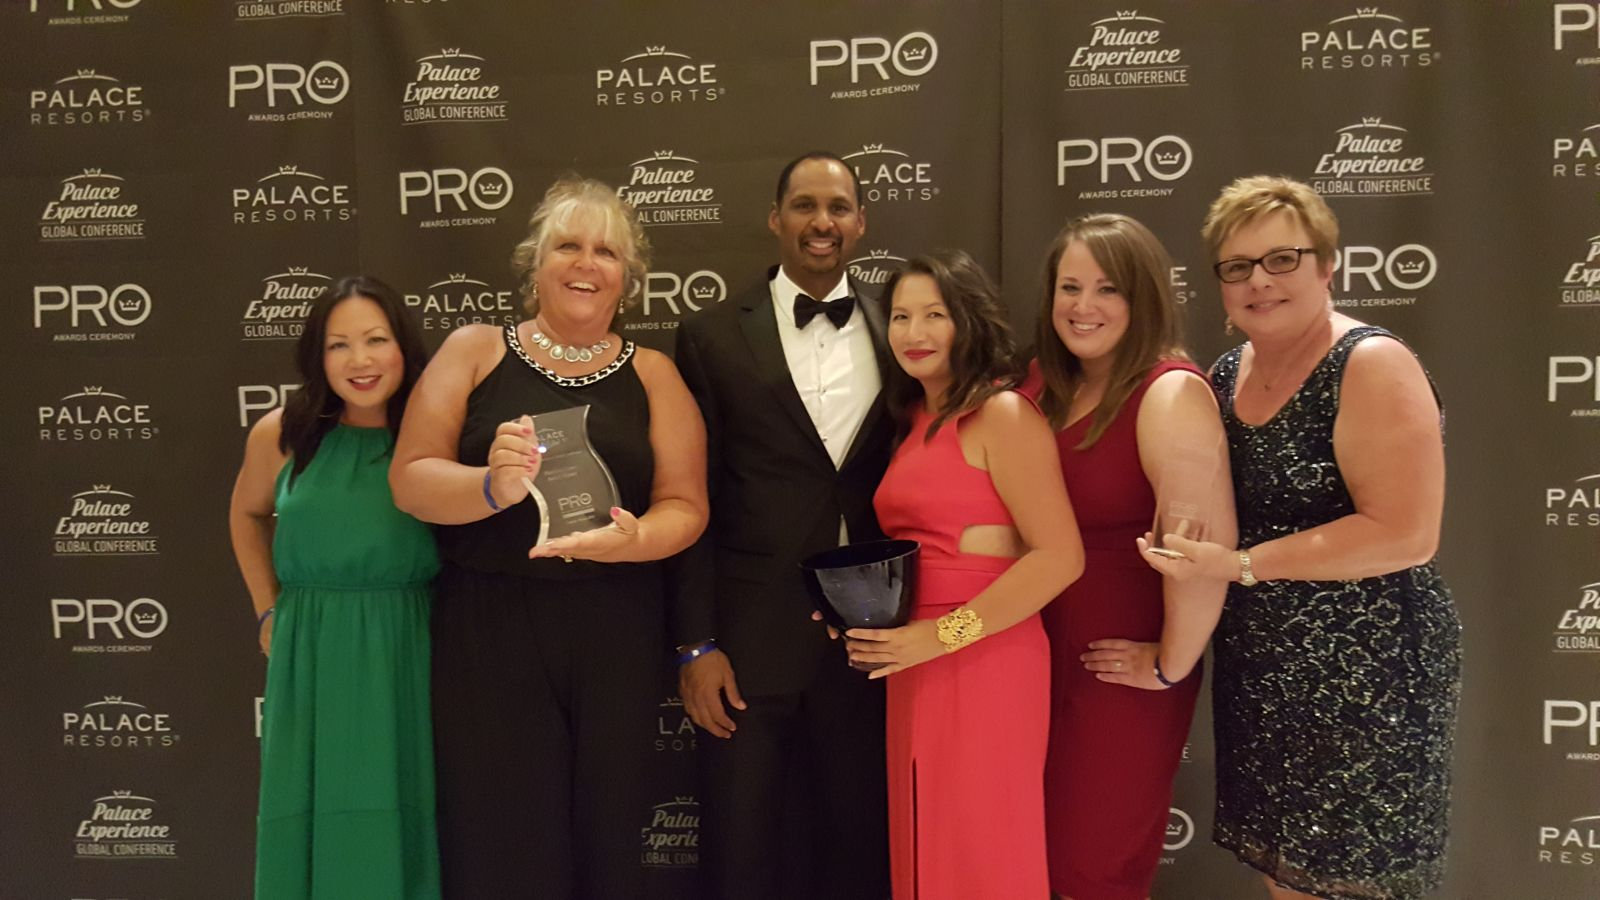 Palace Resorts Global Conference and Awards Event 2015